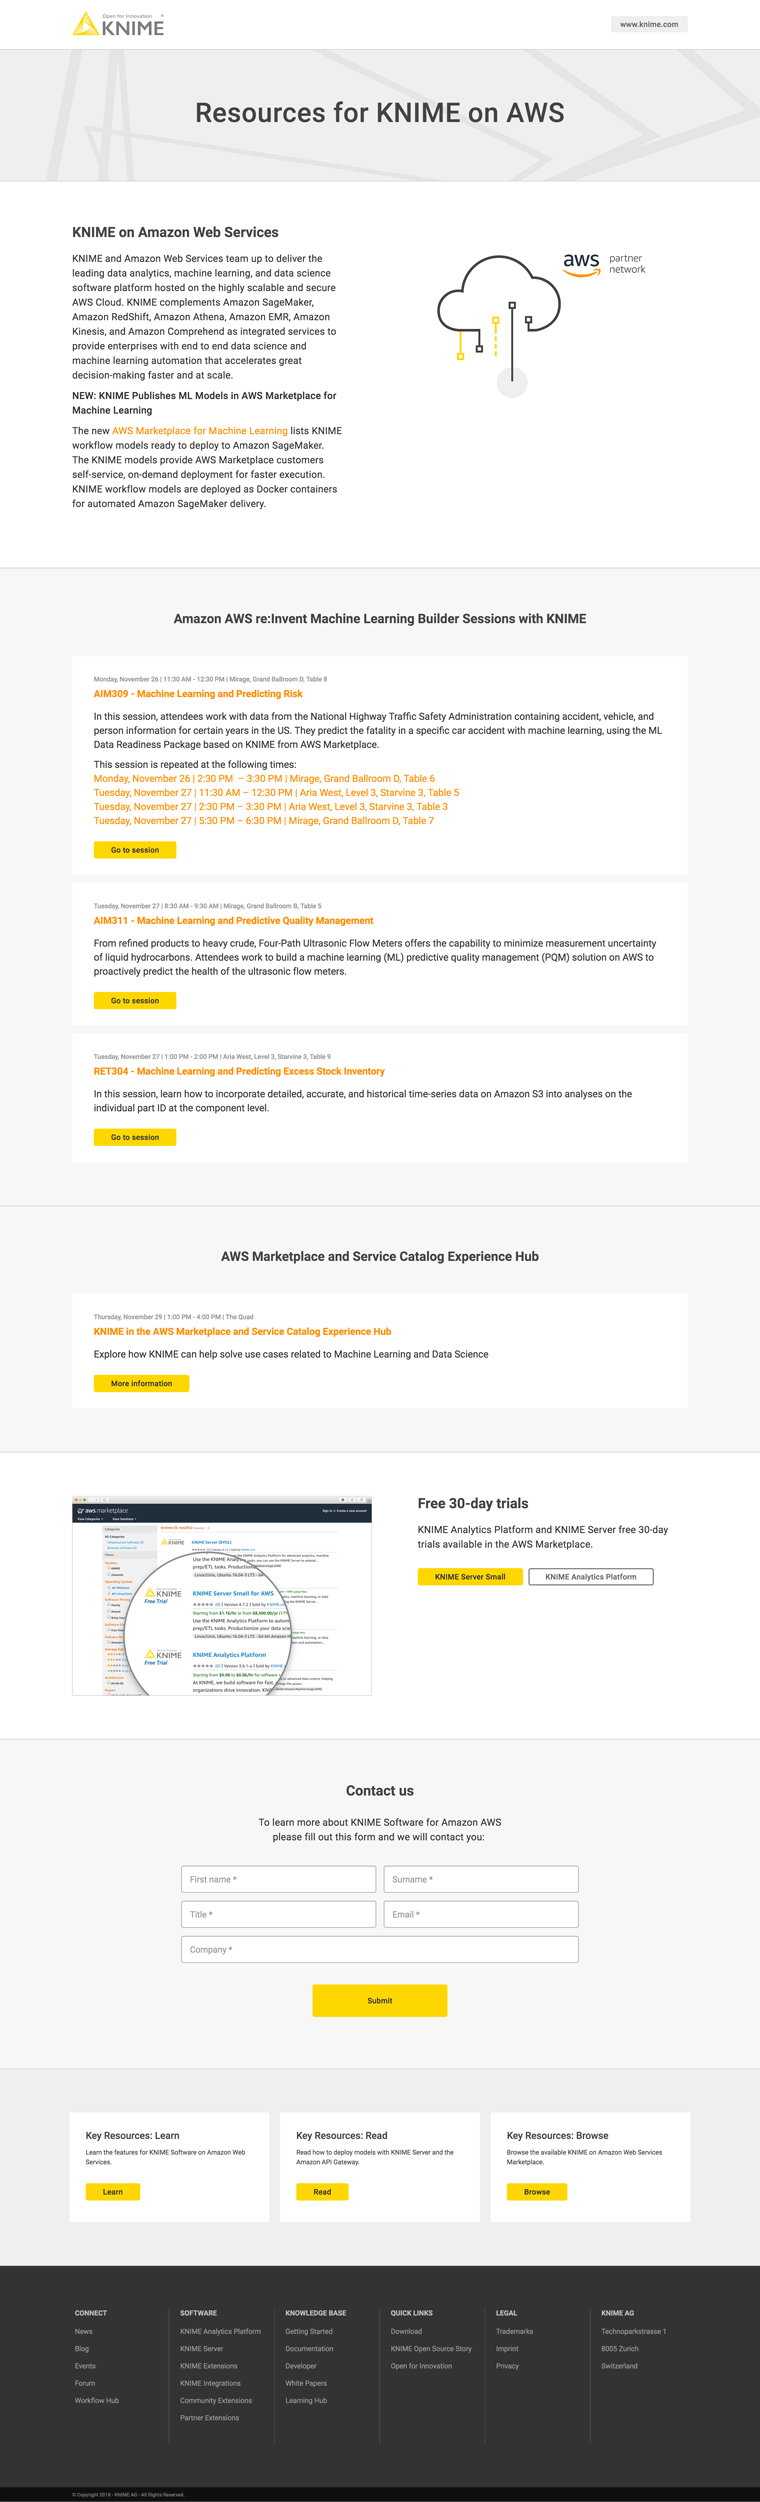 KNIME on Amazon Web Services Landing Page